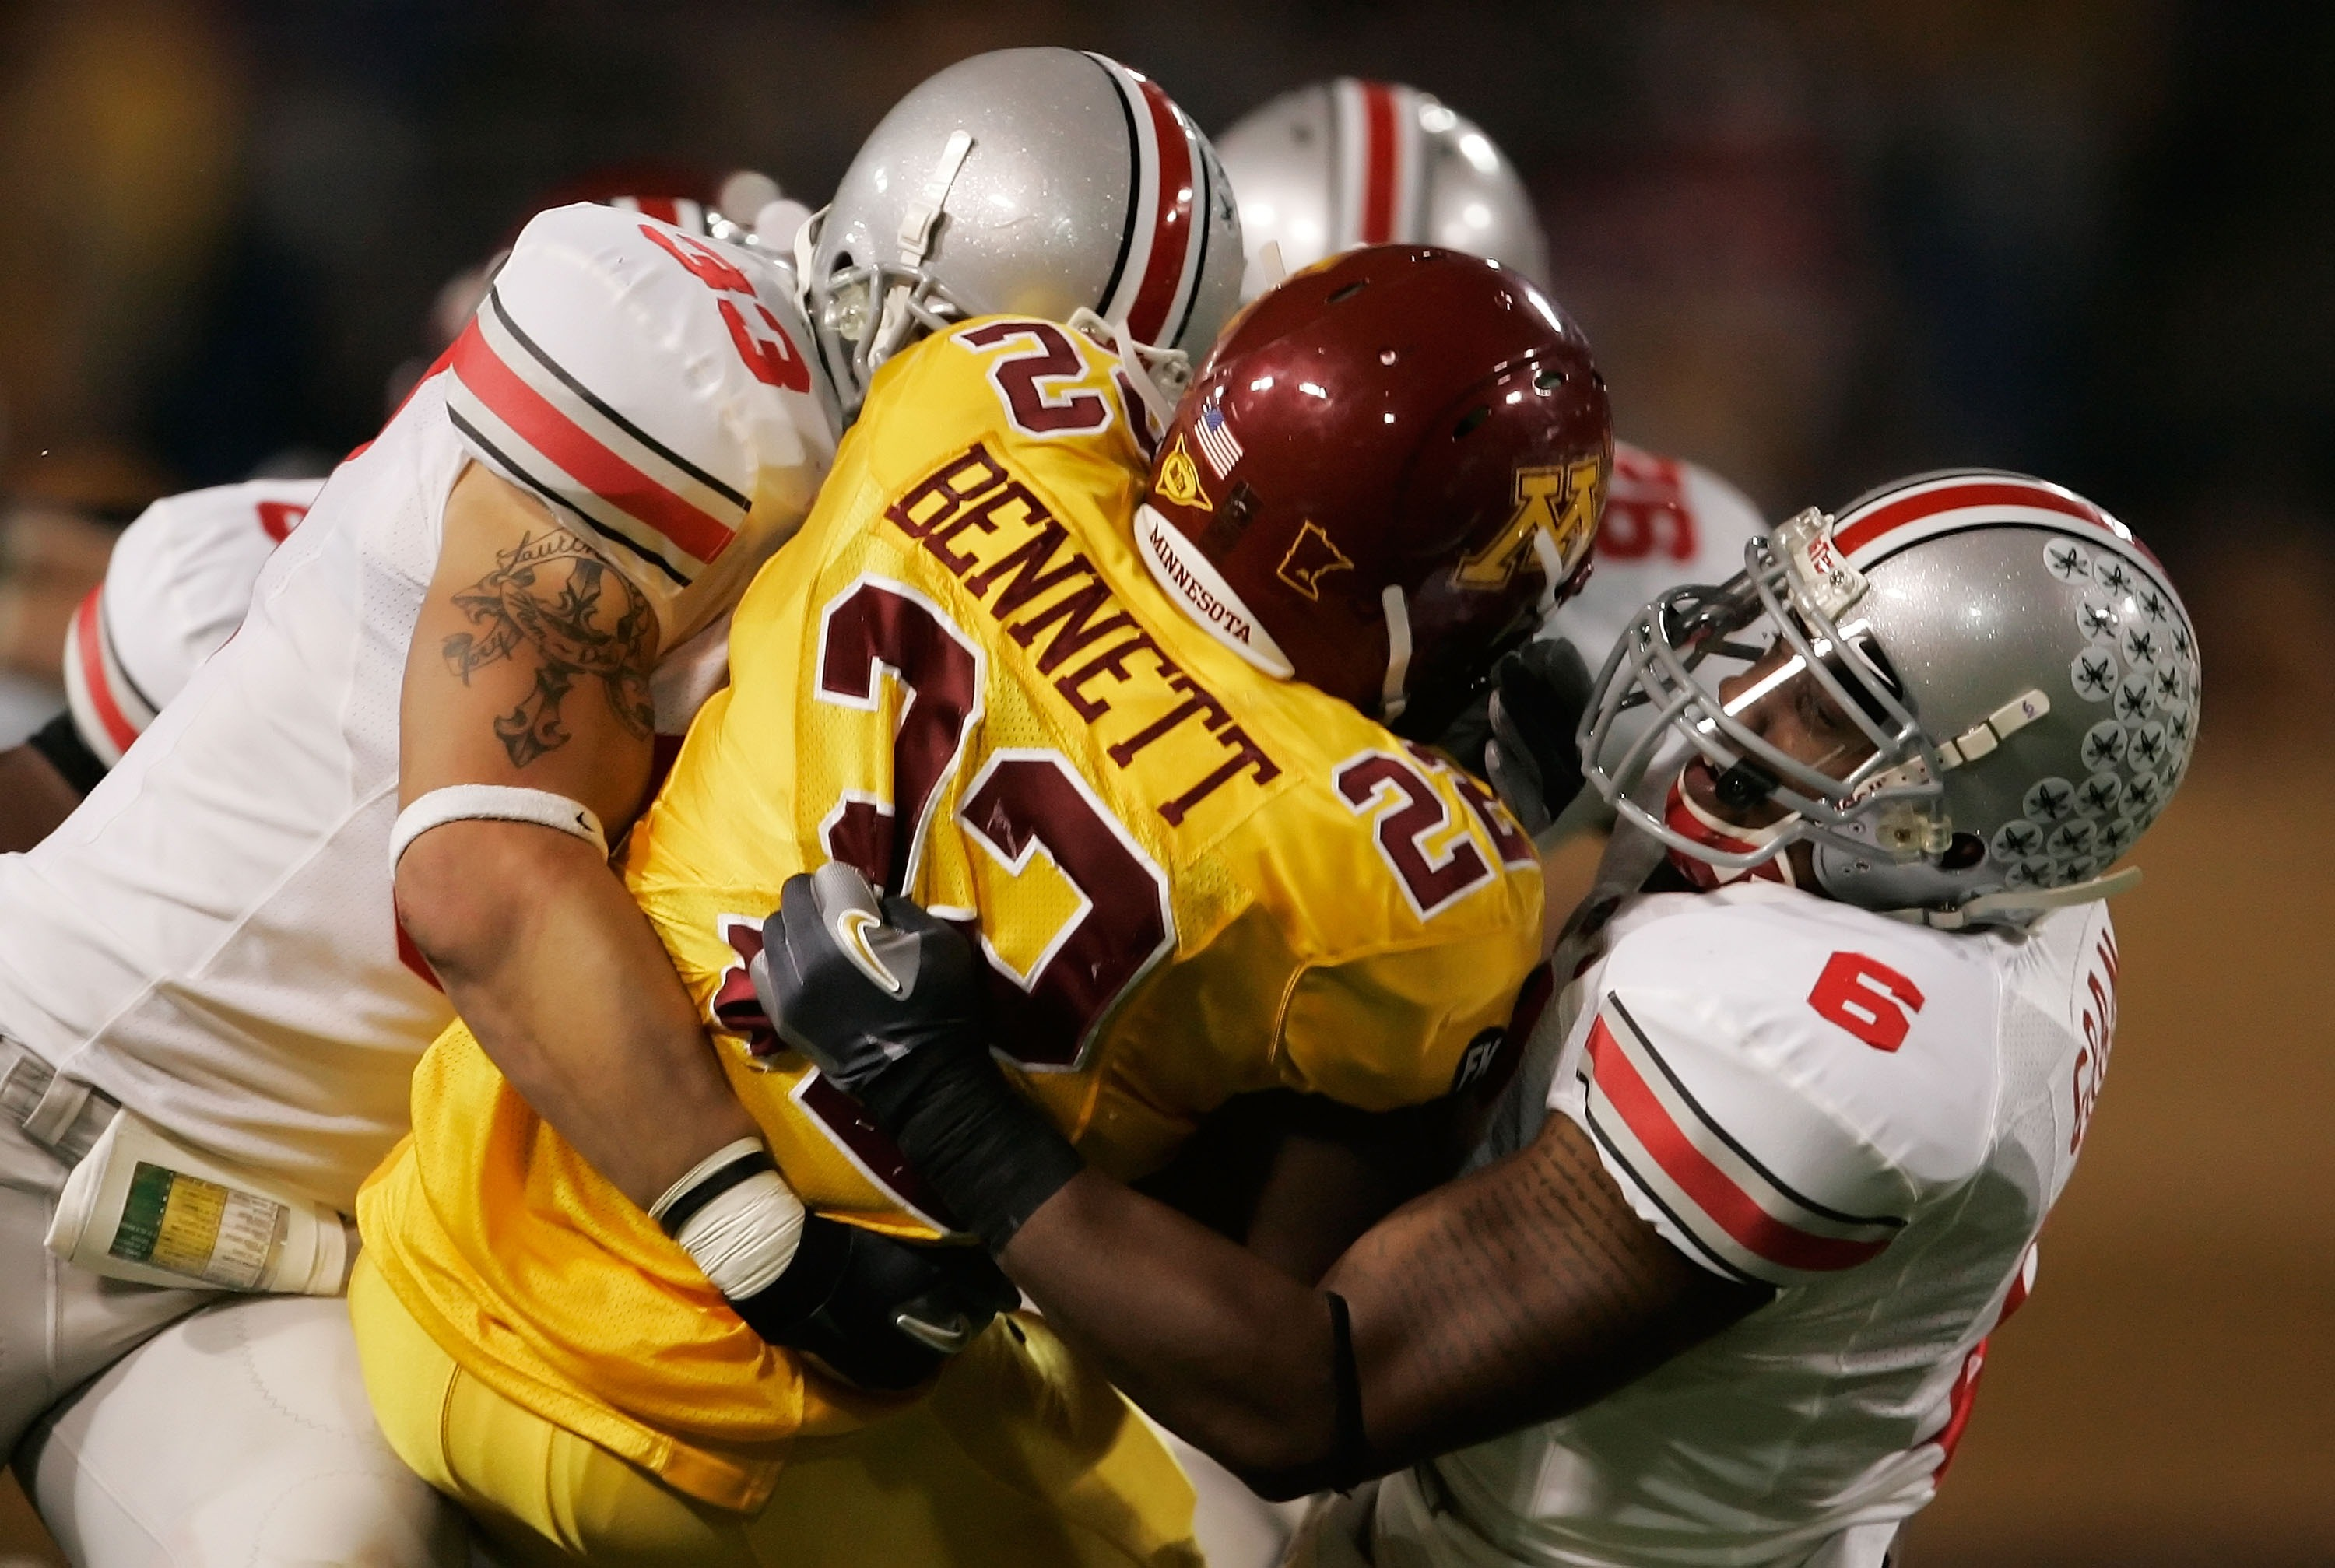 MINNEAPOLIS, MN - SEPTEMBER 29:  Larry Grant #6 and James Laurinaitis #33 of the Ohio State Buckeyes team up to tackle Duane Bennett #22 of the Minnesota Golden Gophers in the third quarter at the Metrodome on September 29, 2007 in Minneapolis, Minnesota.